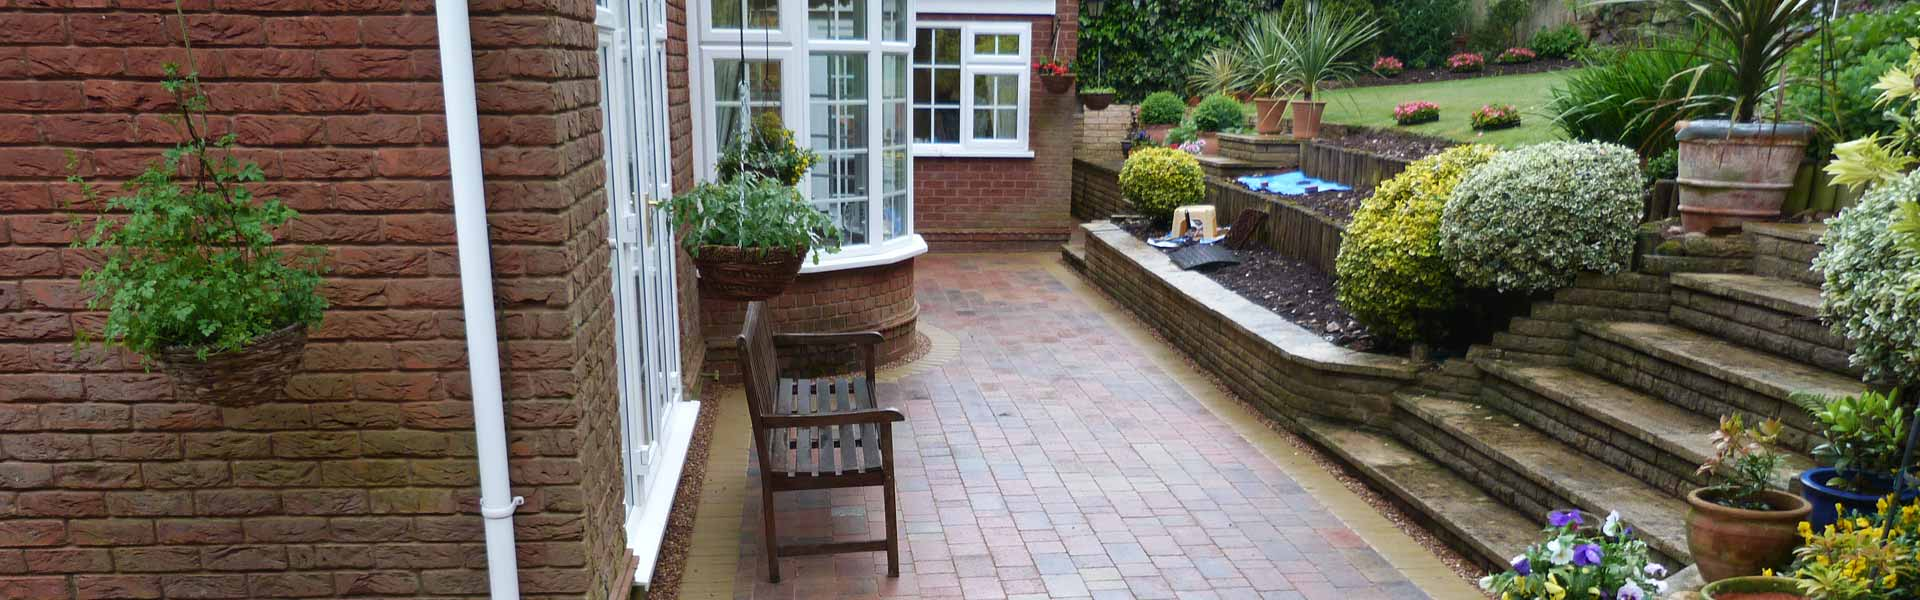 Patios and Paving Installers Solihull